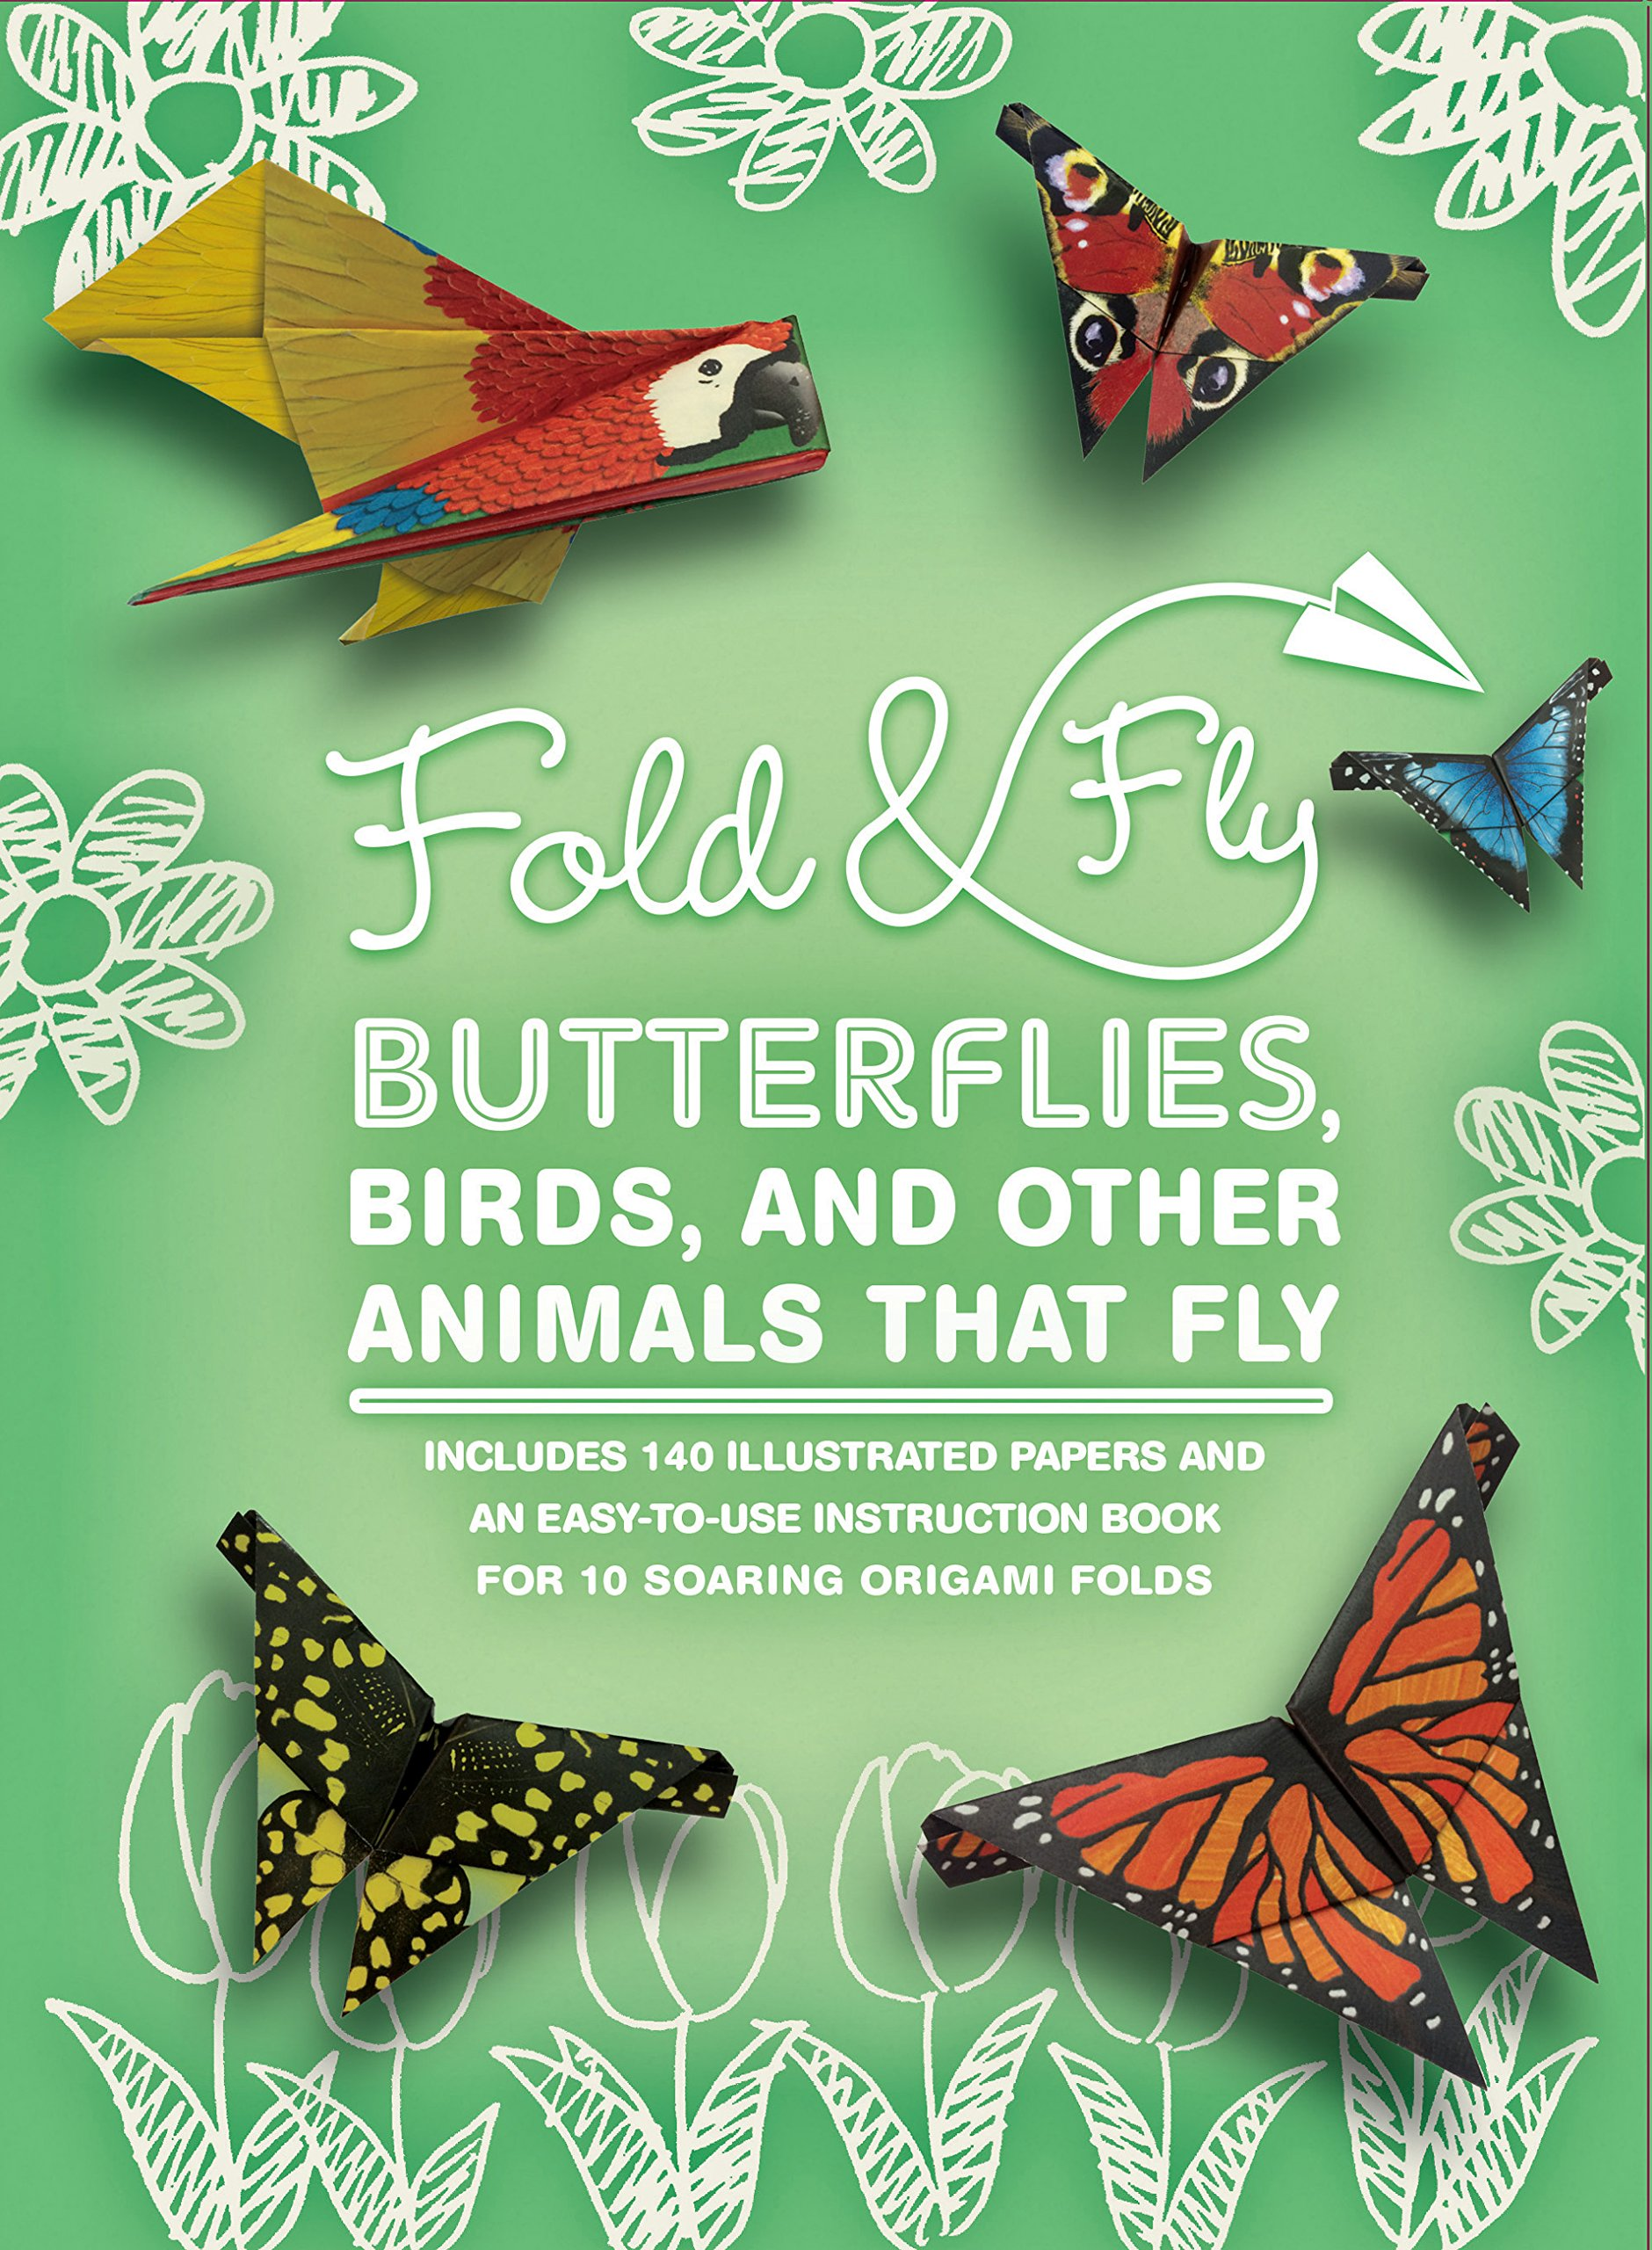 Fold Fly Butterflies Birds And Other Animals That Over 25 Paper Creations 835 Stephanie Hoover 9781631062964 Amazon Books